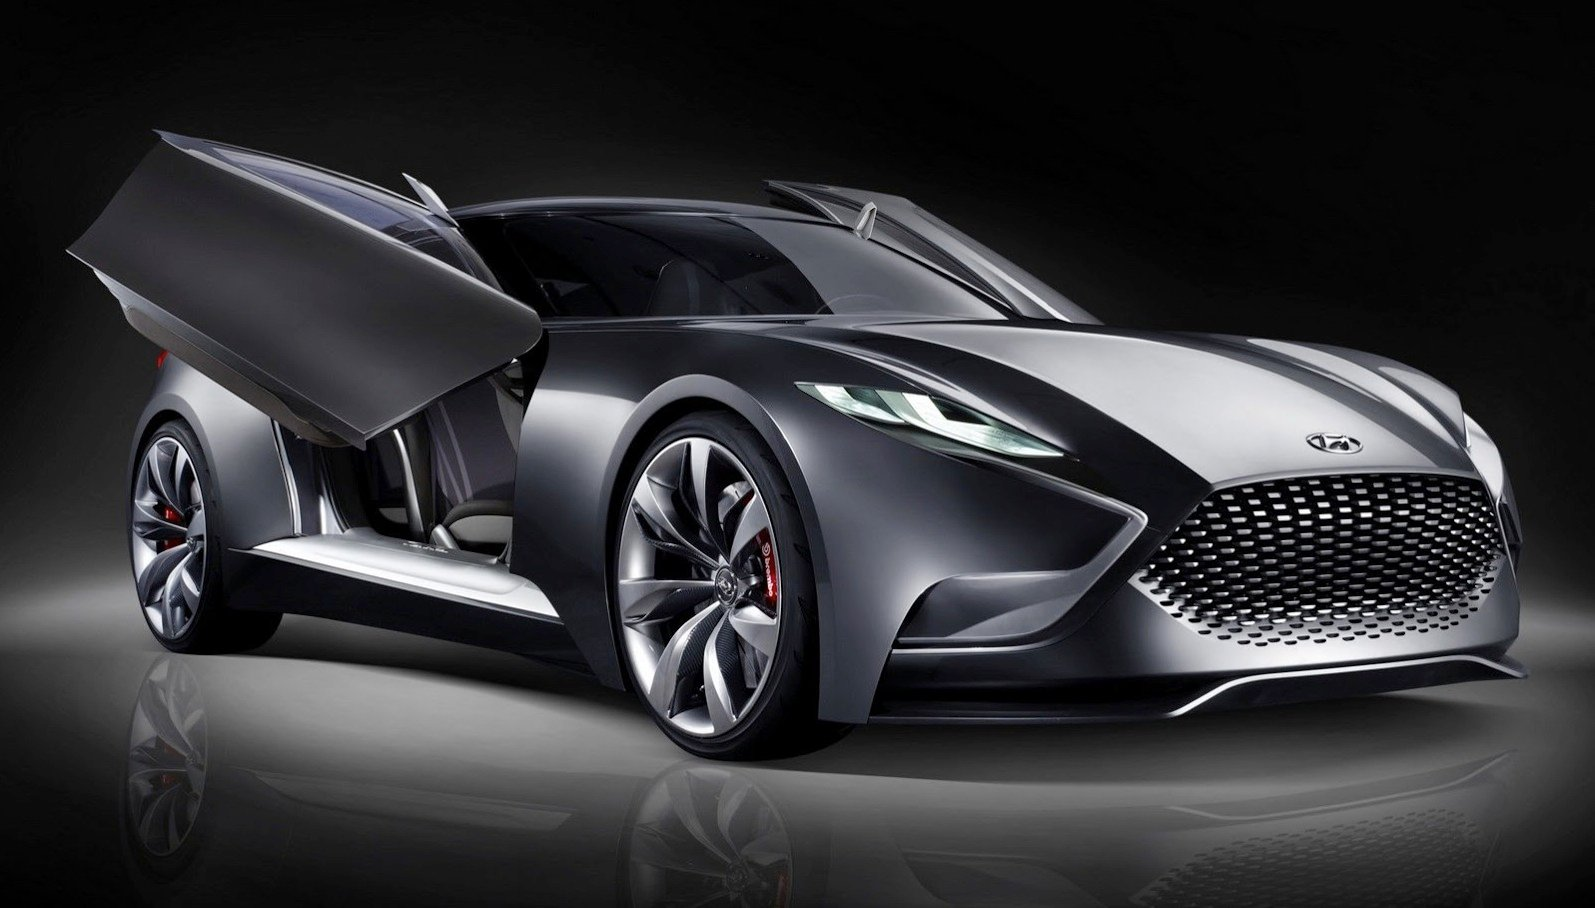 Hyundai Hnd 9 Concept Previews New Genesis Coupe In Seoul